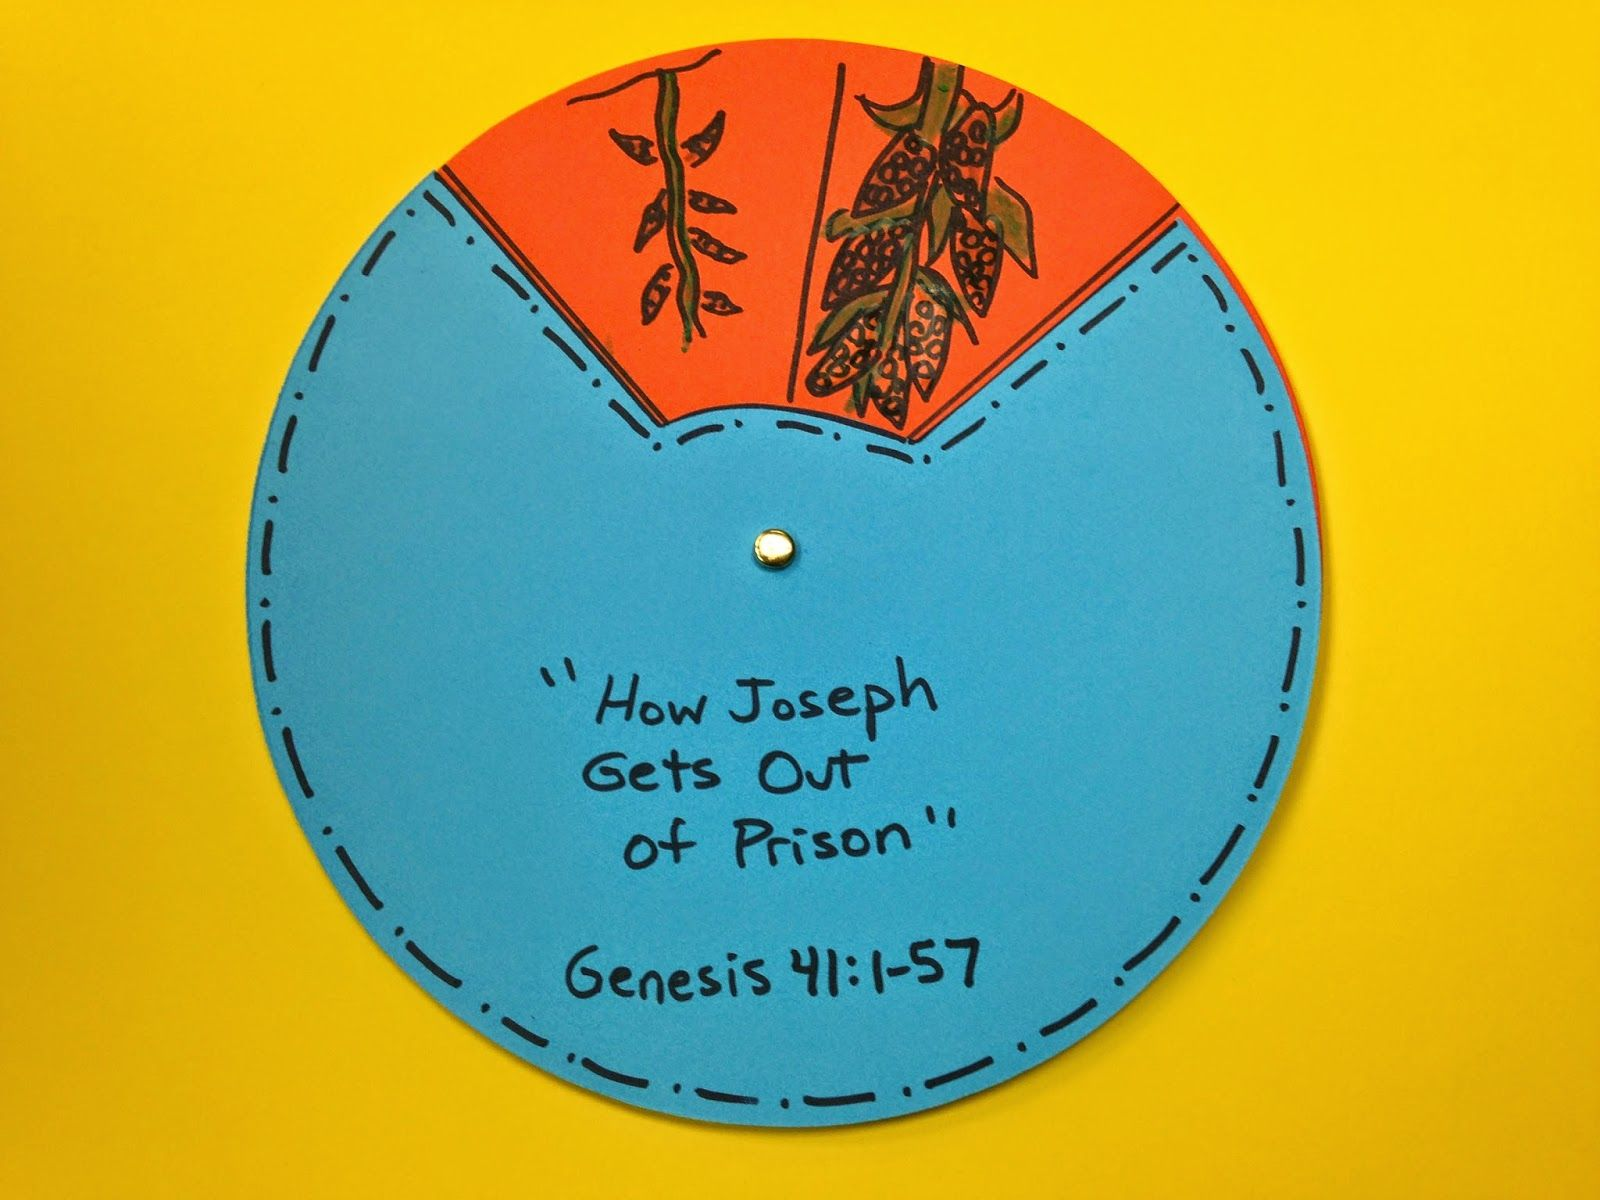 Crafts for sunday school lessons - How Joseph Gets Out Of Prison Craft This Craft Will Help You Prepare Your Sunday School Lesson On Genesis On The Bible Story Of Joseph